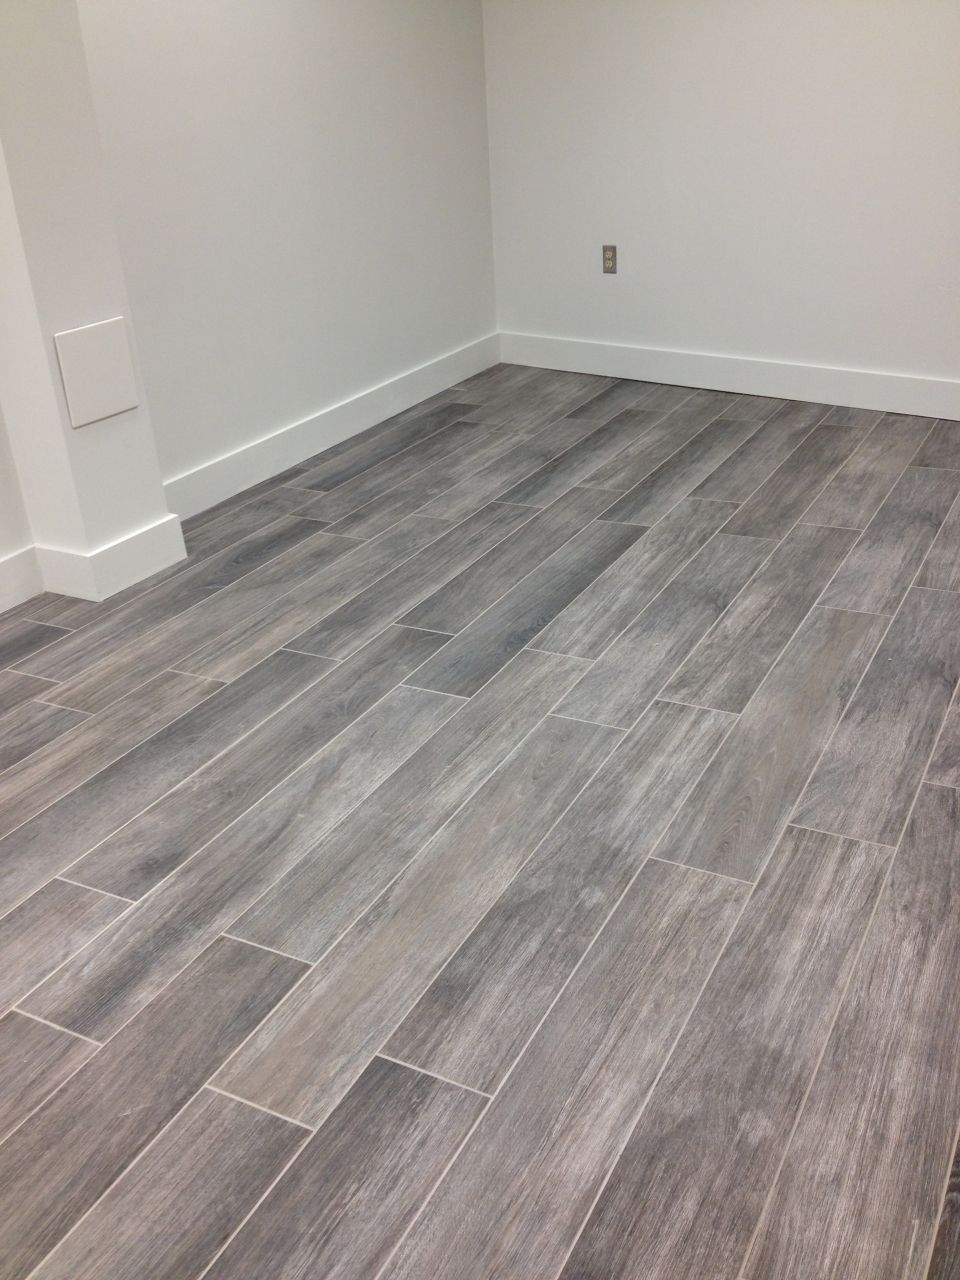 grey wood floor, gray wood tile floor nO3lcD6n8 Grey wood tile, Grey